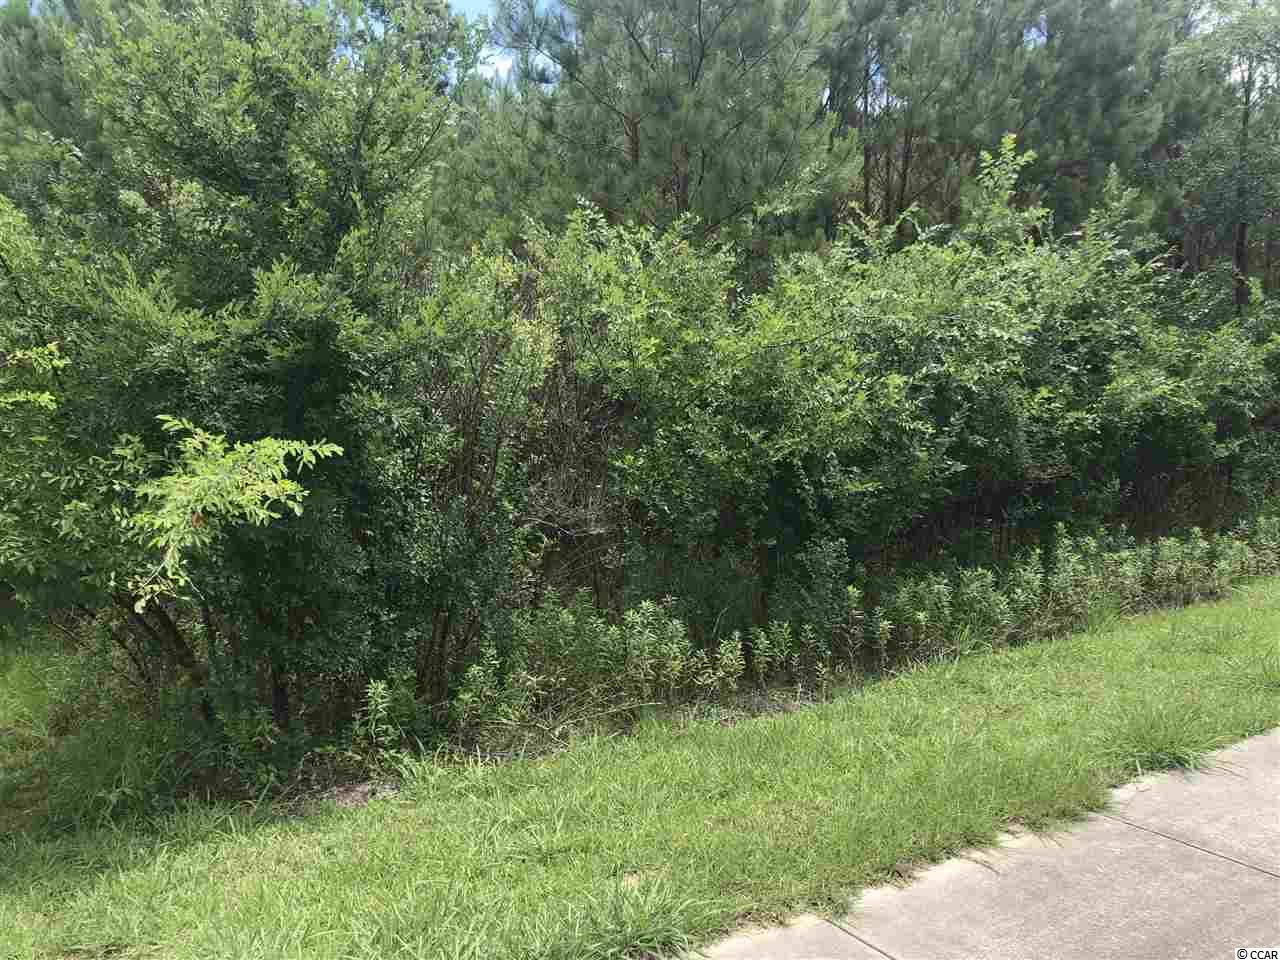 Lot 13 offering 236 frontage feet on 17th ave S This lot offers significant road frontage with great visibility and good  access due to its location at the entrance of 17th ave s and Dividend Loop. Water and sewer available. Owner Financing Available.!